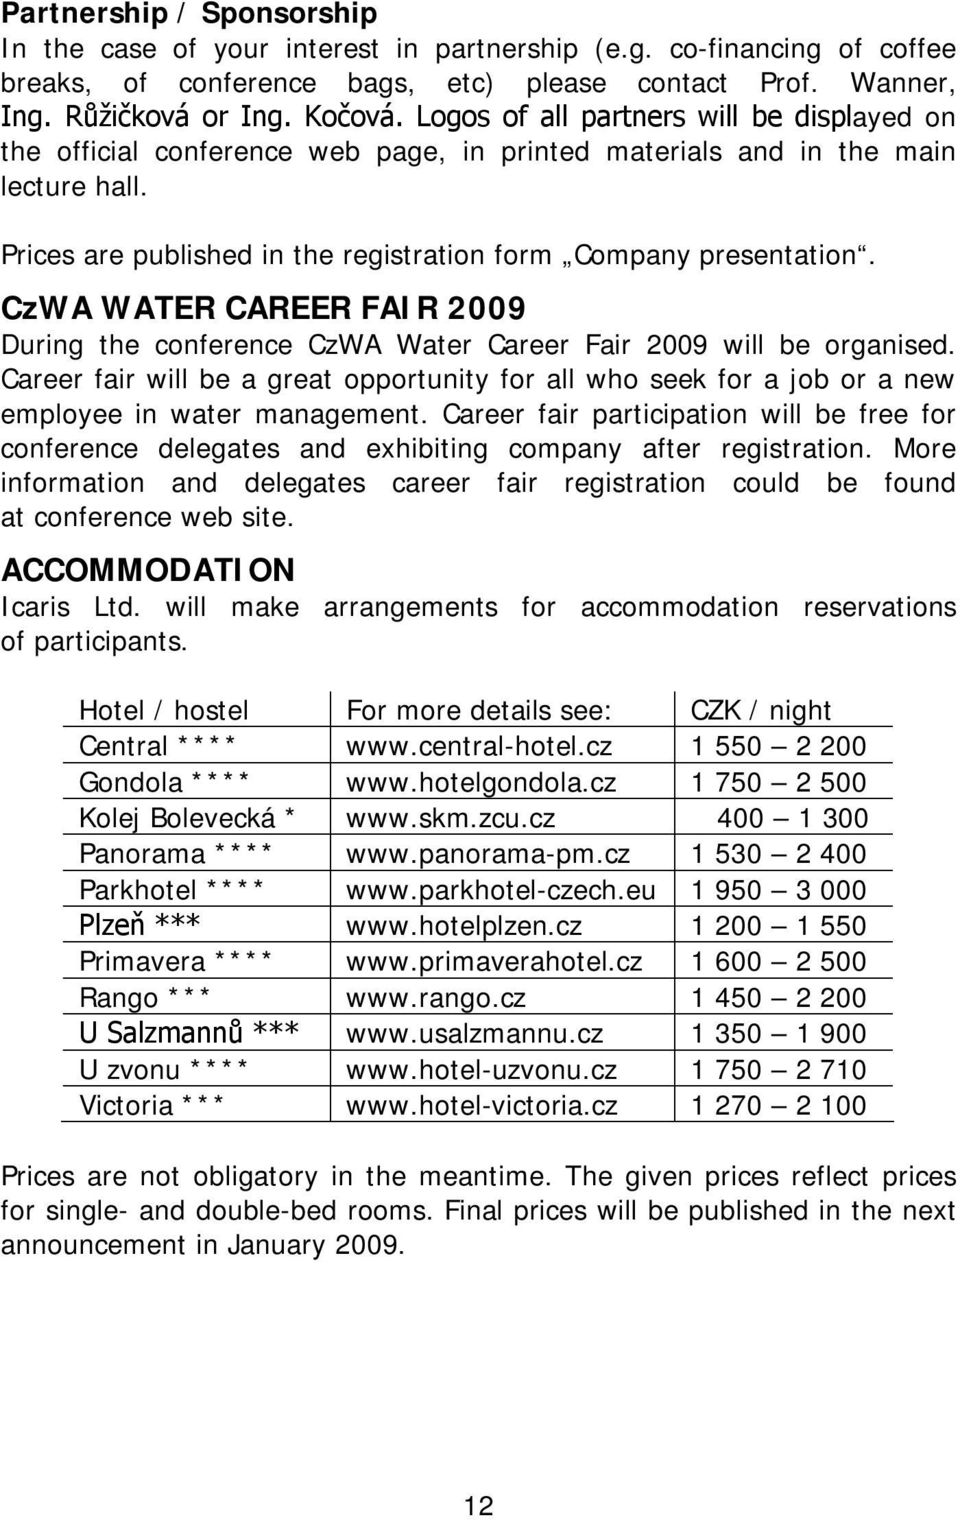 CzWA WATER CAREER FAIR 2009 During the conference CzWA Water Career Fair 2009 will be organised.